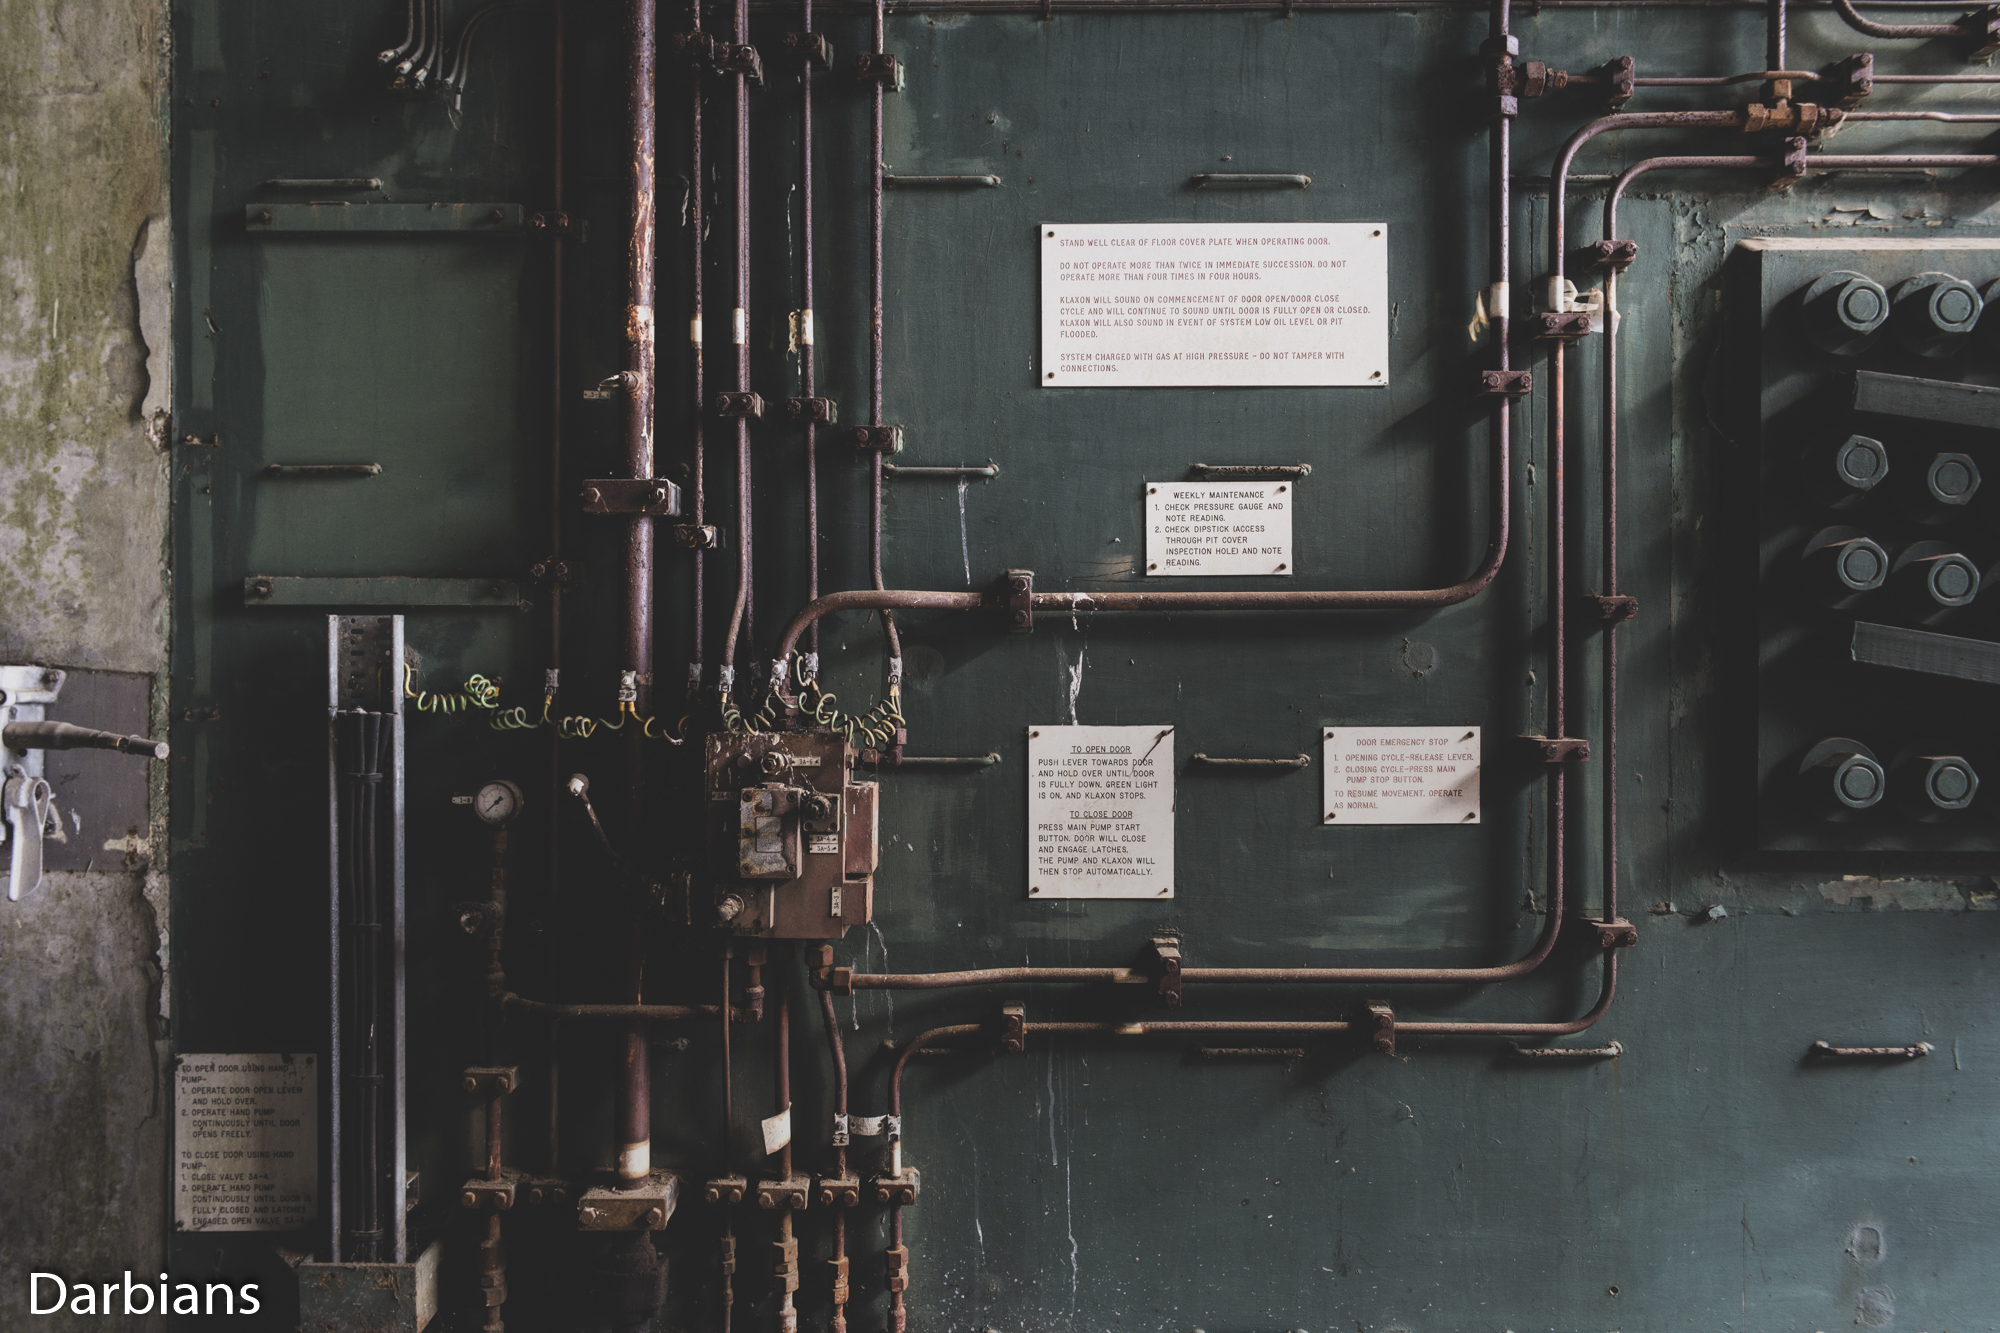 RAF Greenham Common: A close up of the hydraulic system.